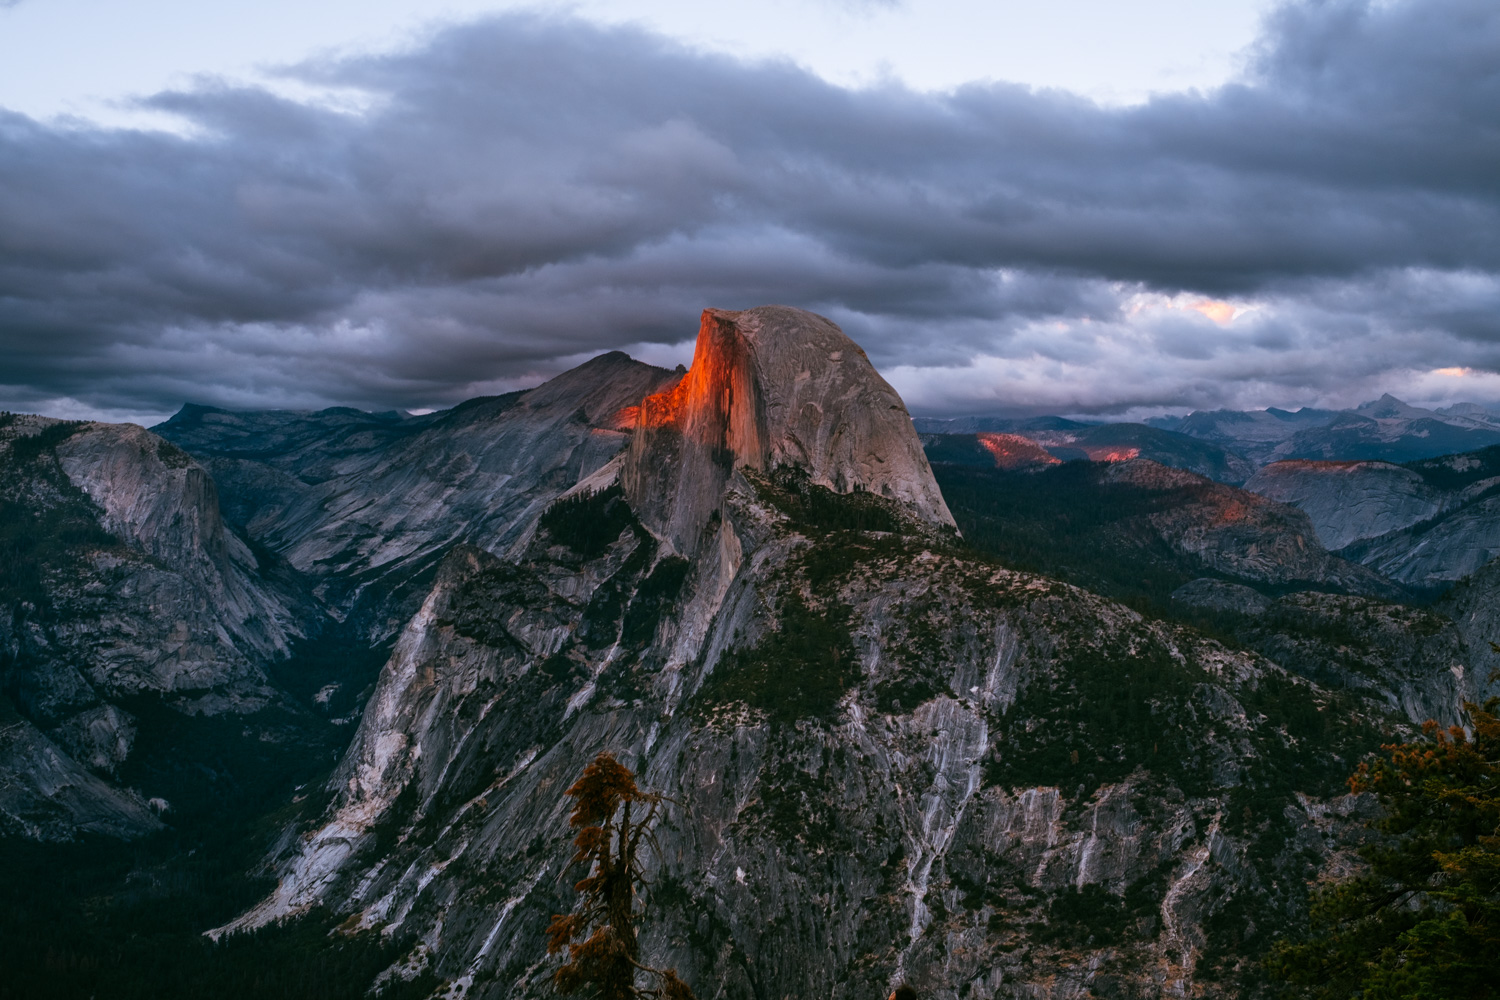 Half Dome painted in red by the warm rays of sunlight